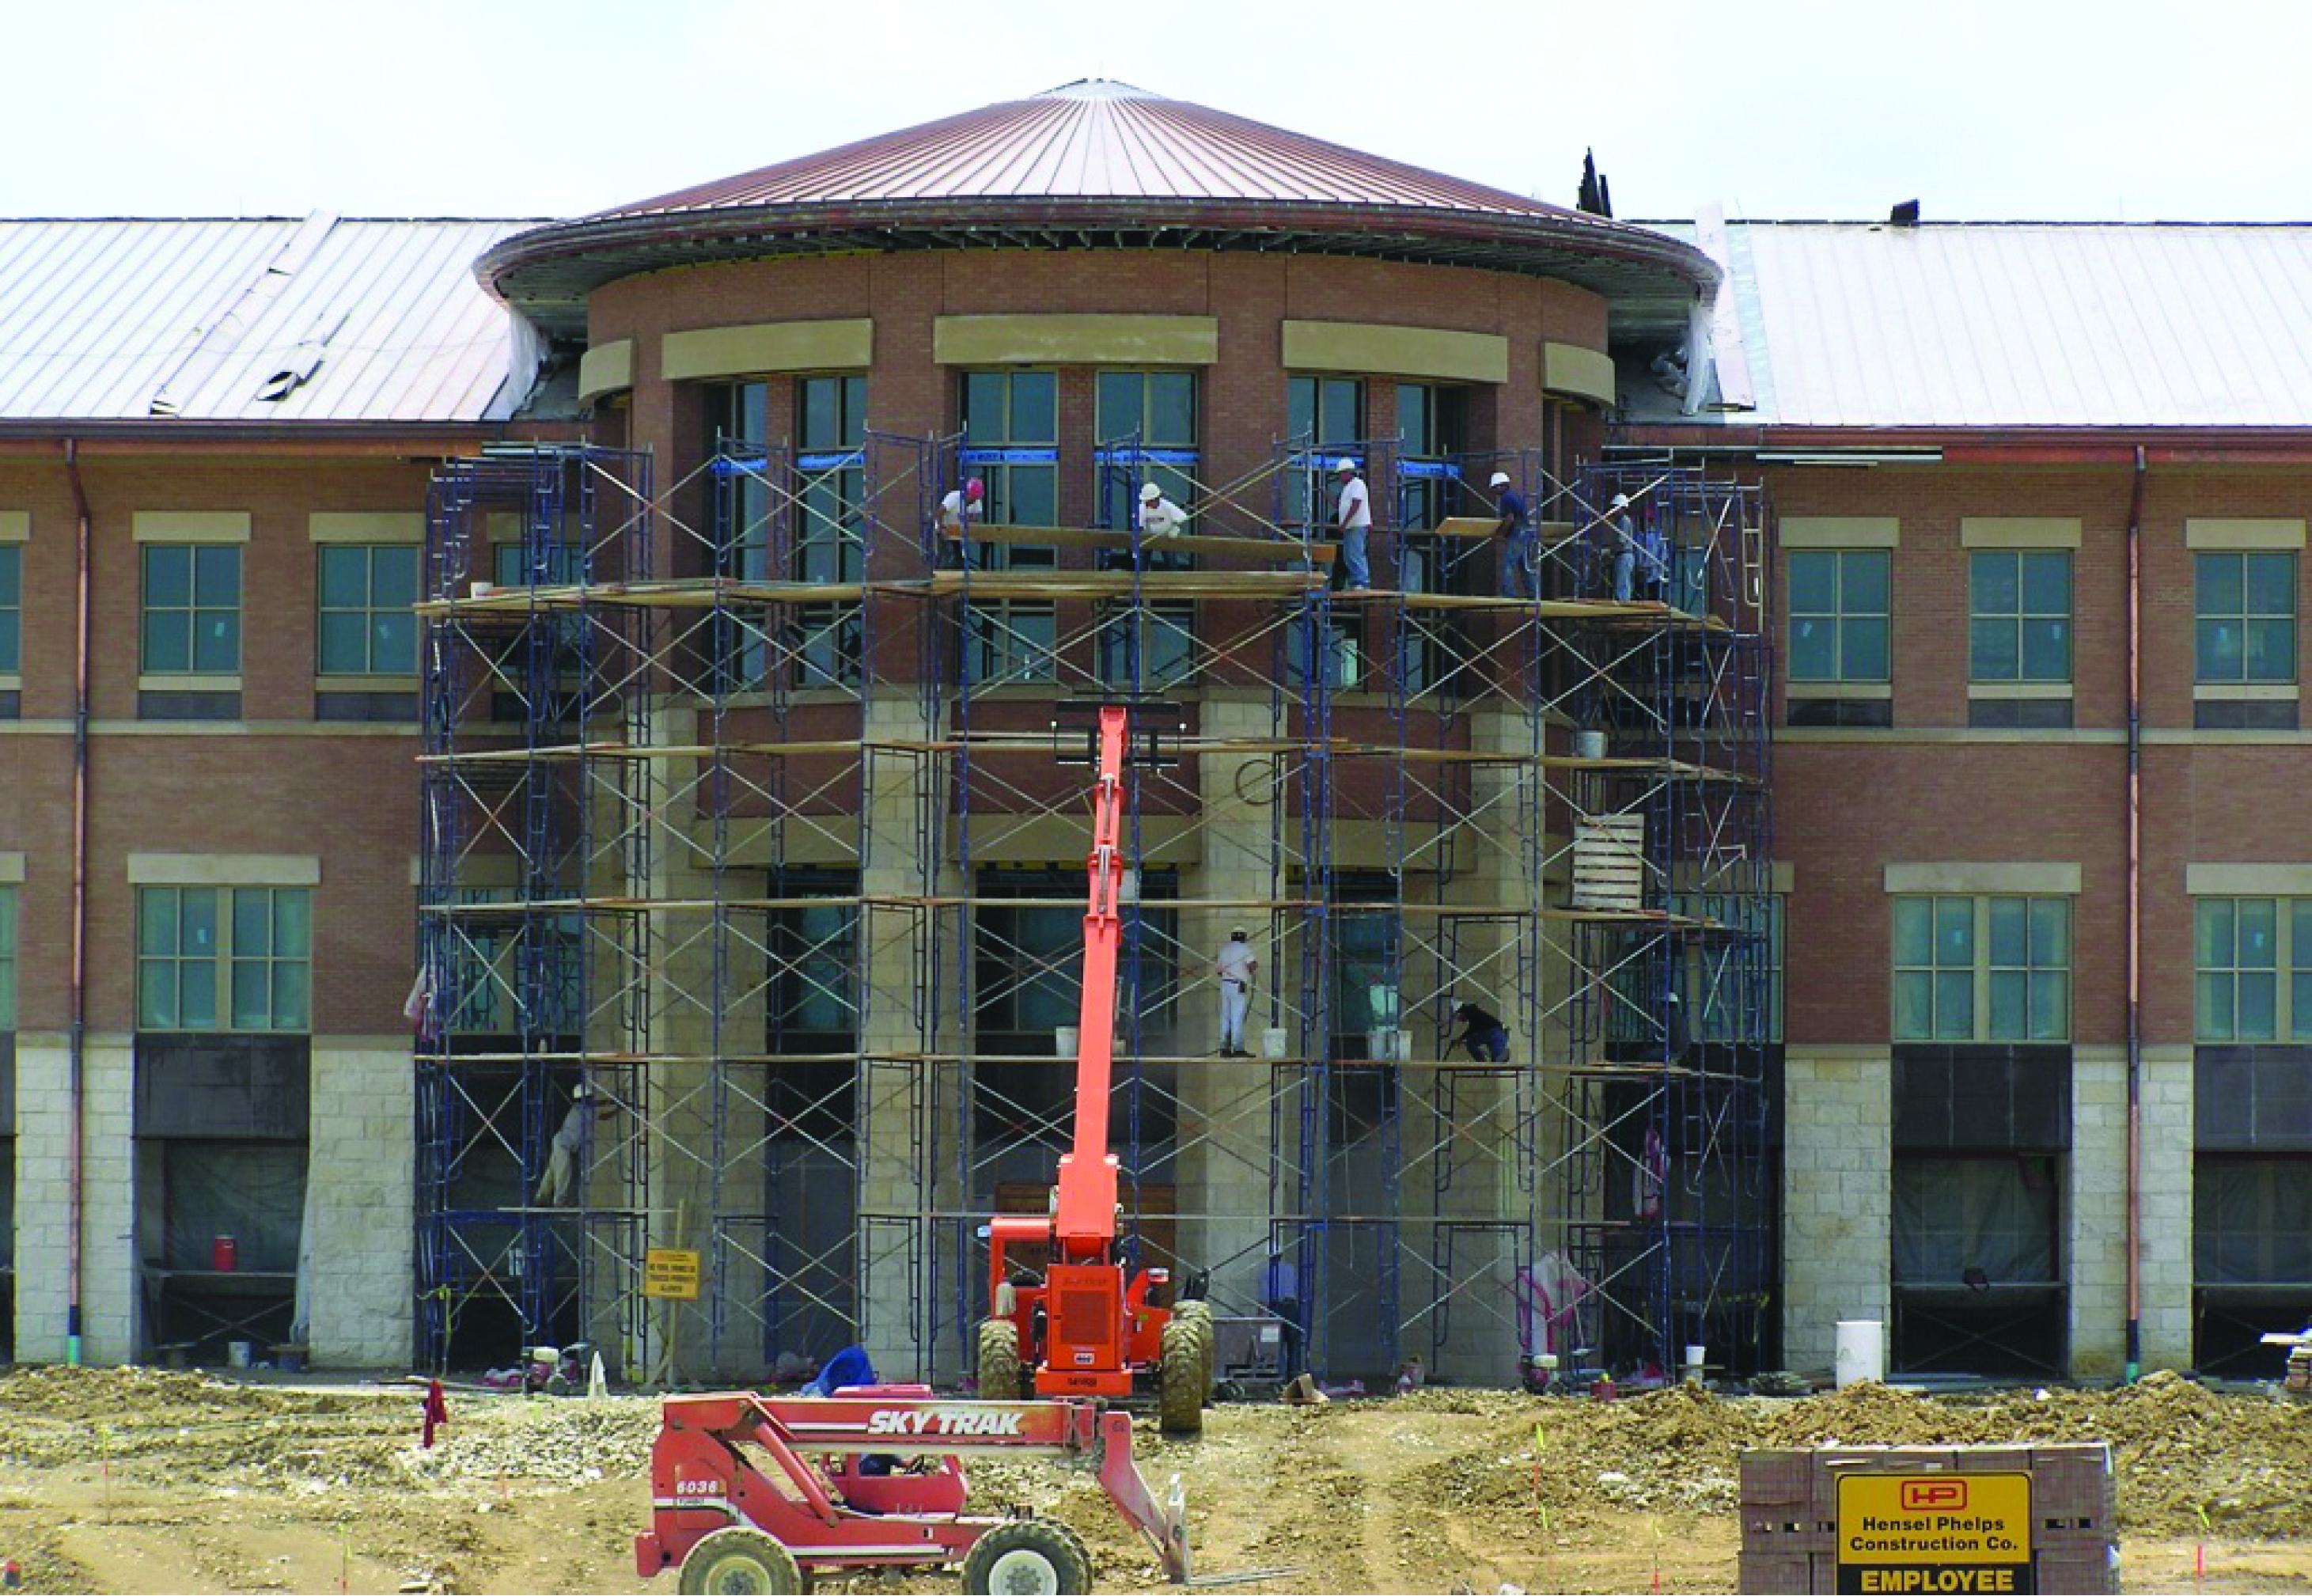 Construction of the avery building at the round rock